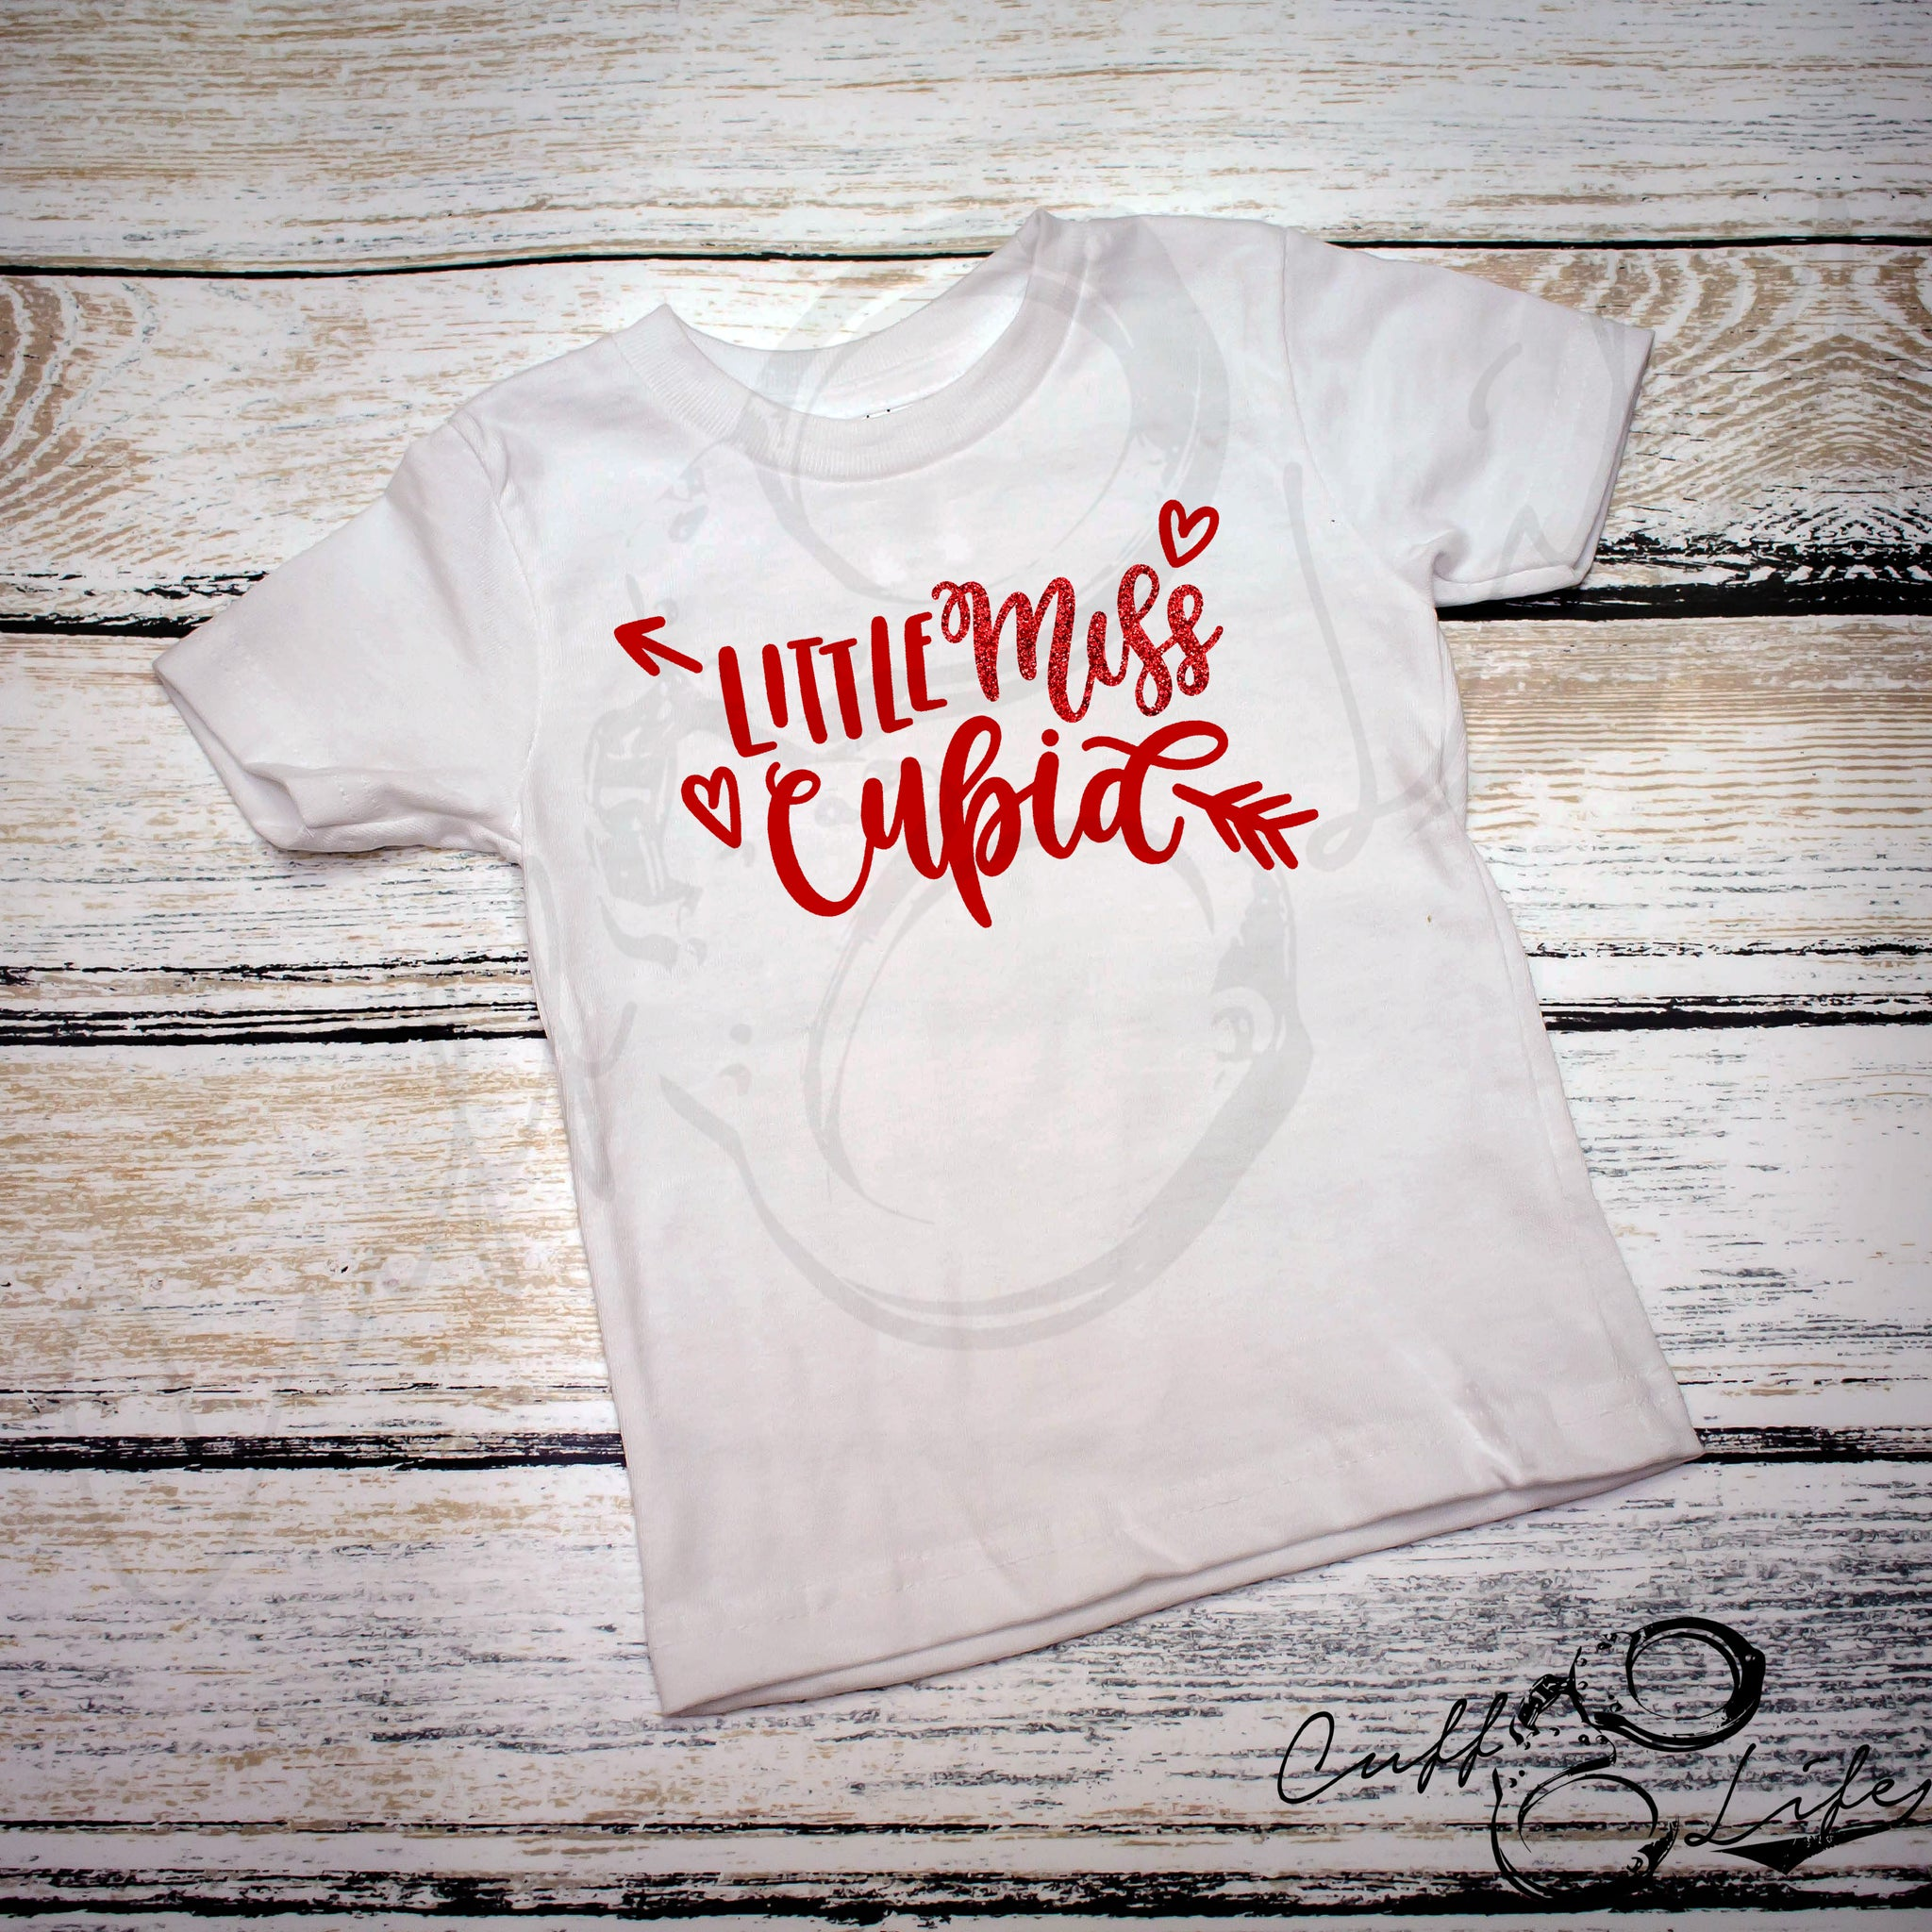 Little Miss Cupid - Toddler/Youth T-Shirt